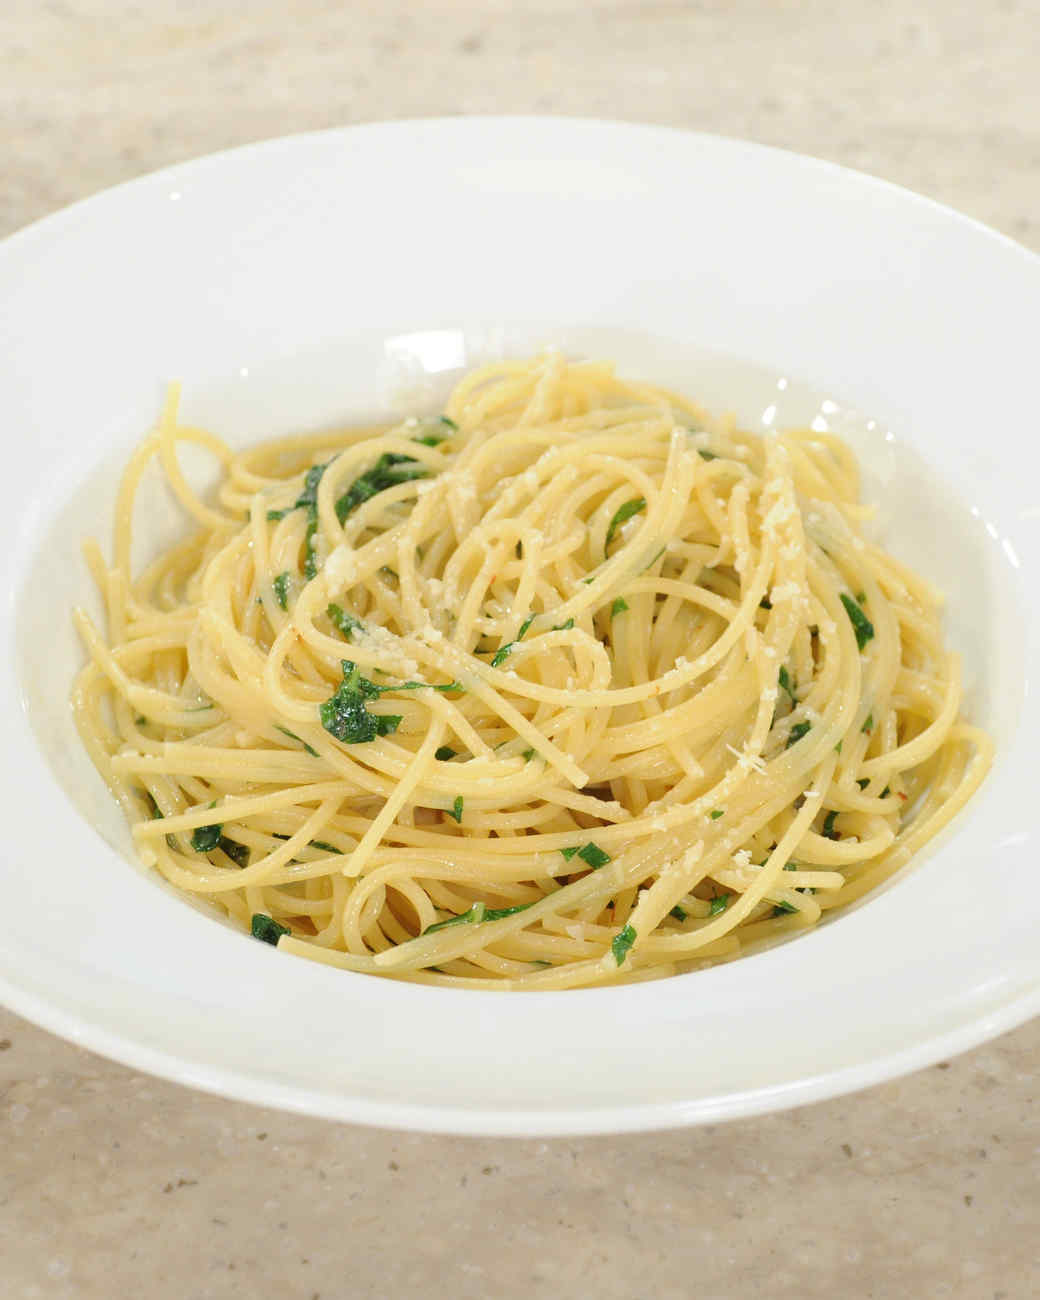 spaghetti-garlic-oil-mslb7004.jpg